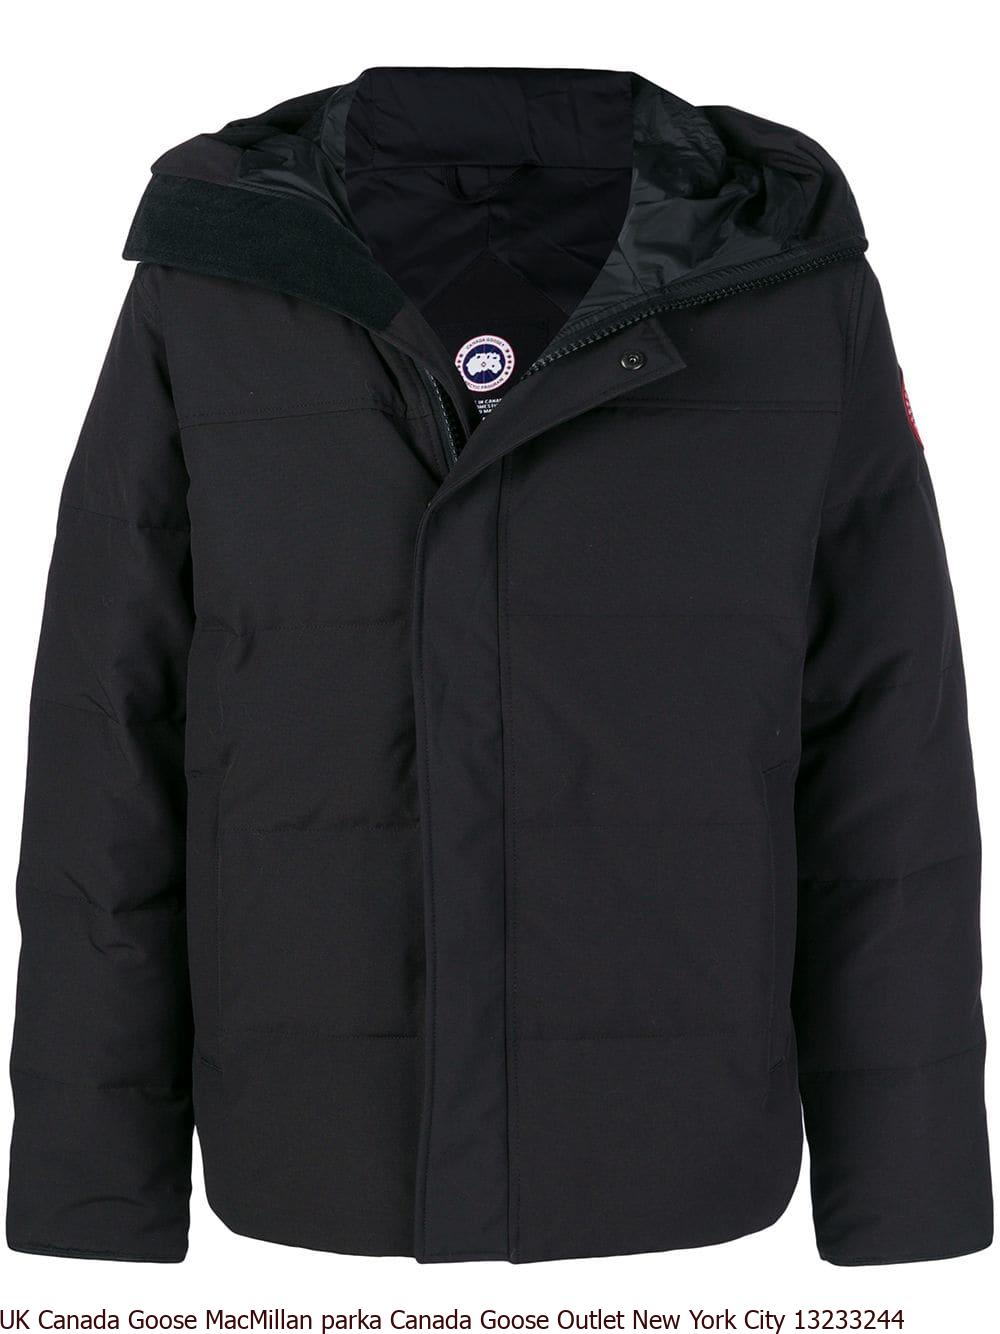 UK Canada Goose MacMillan parka Canada Goose Outlet New York City 13233244  – Canada Goose Outlet, Cheap Canada Goose UK Jackets Sale 65% OFF